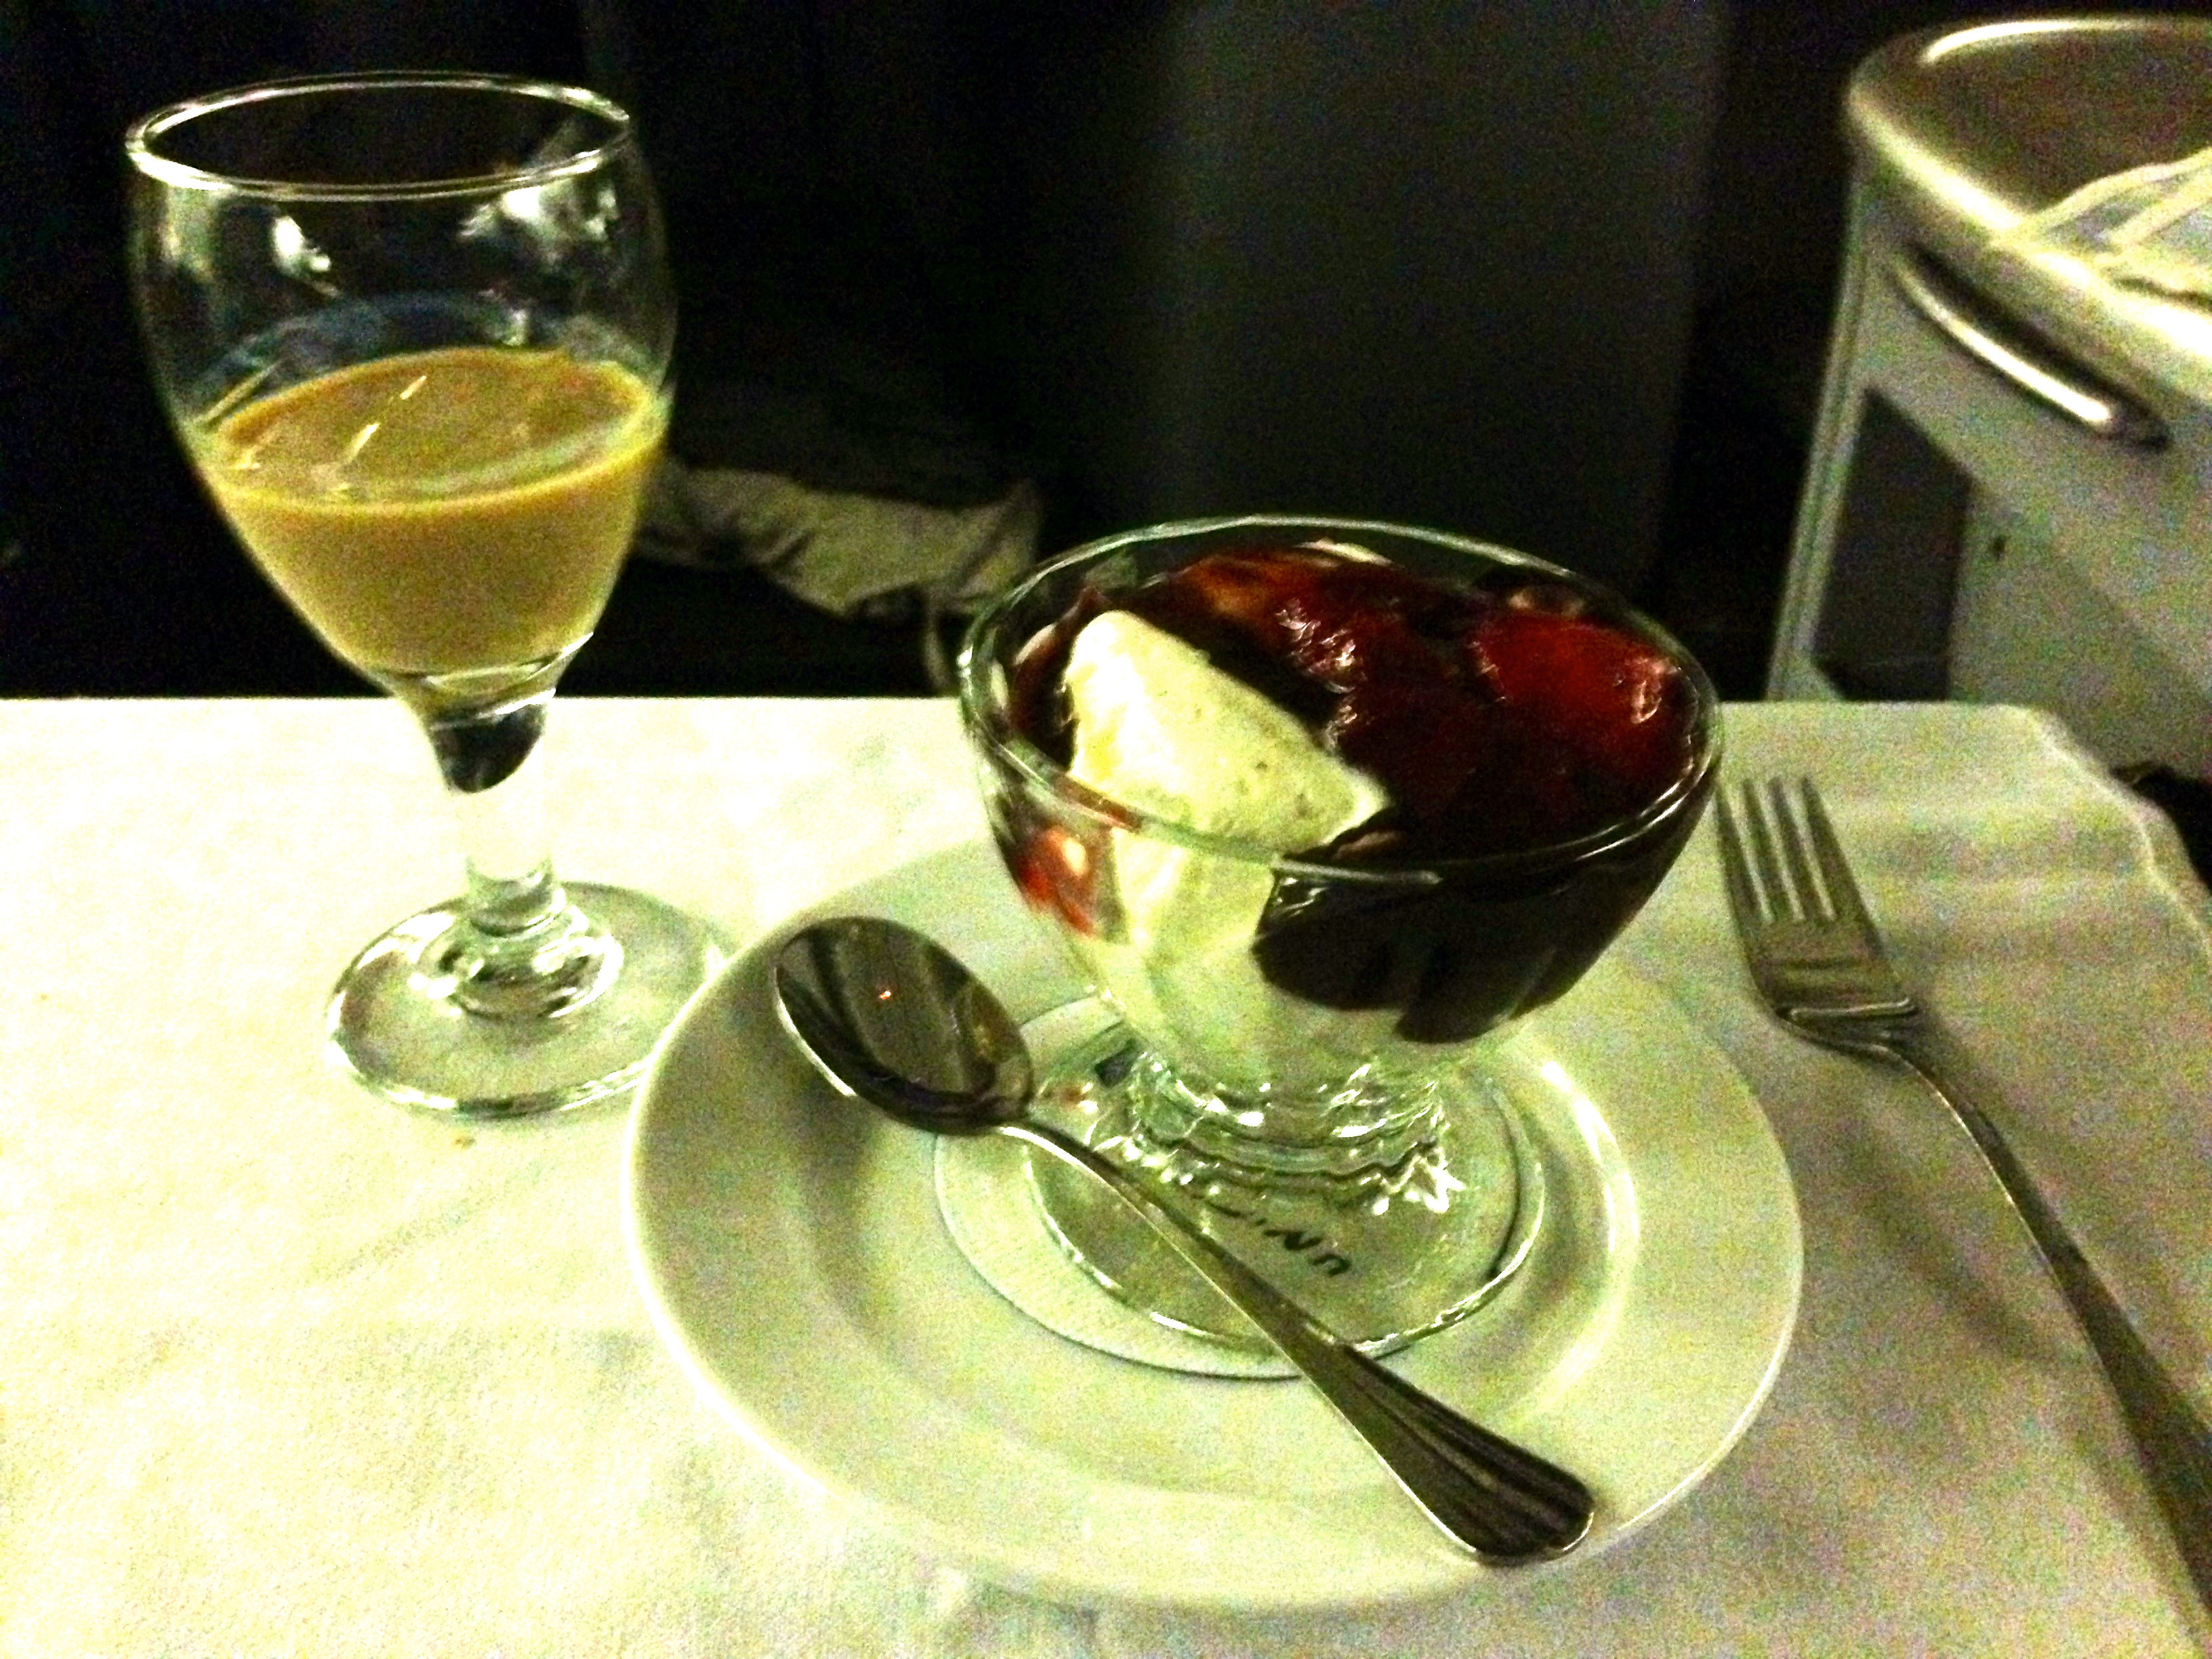 United Airlines 767-200 Business Class Dessert Sundae BusinessFirst Chicago to Amsterdam